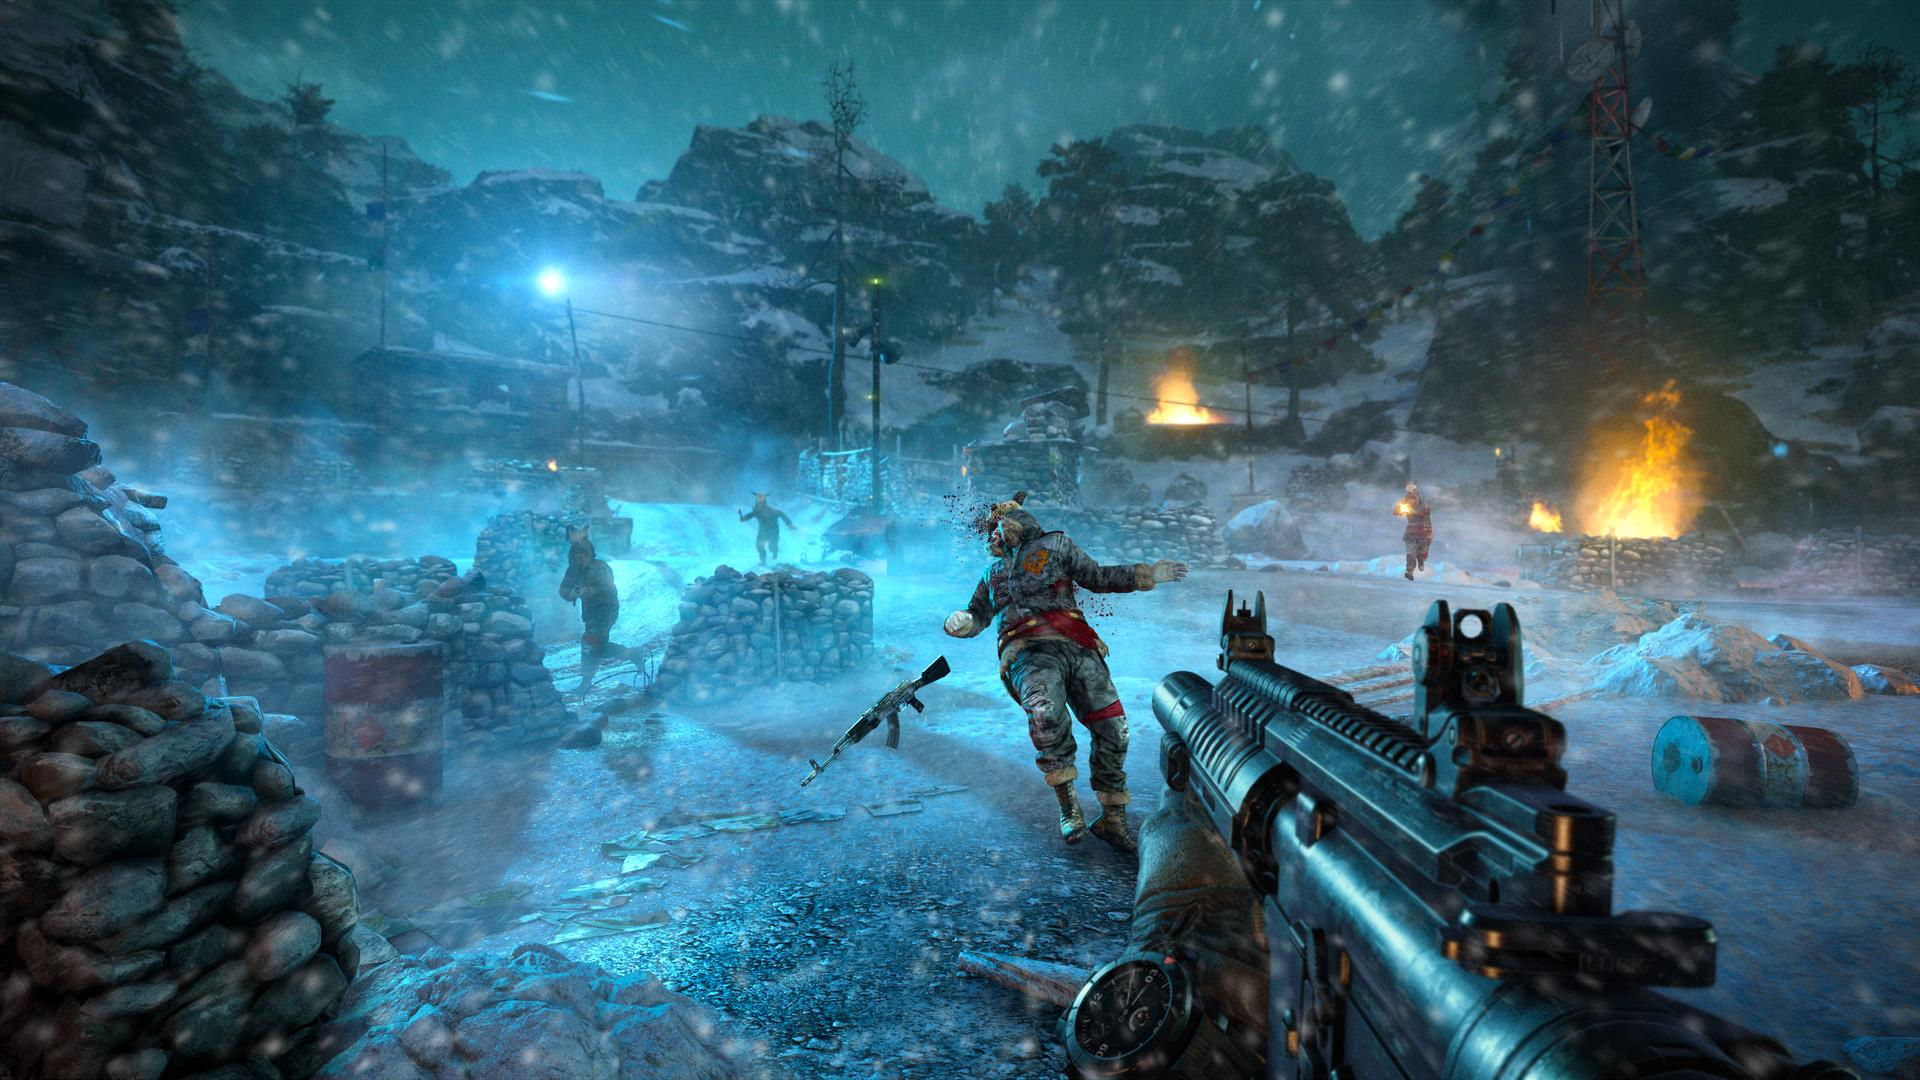 far cry 4 a look at new map and mechanics of valley of. Black Bedroom Furniture Sets. Home Design Ideas